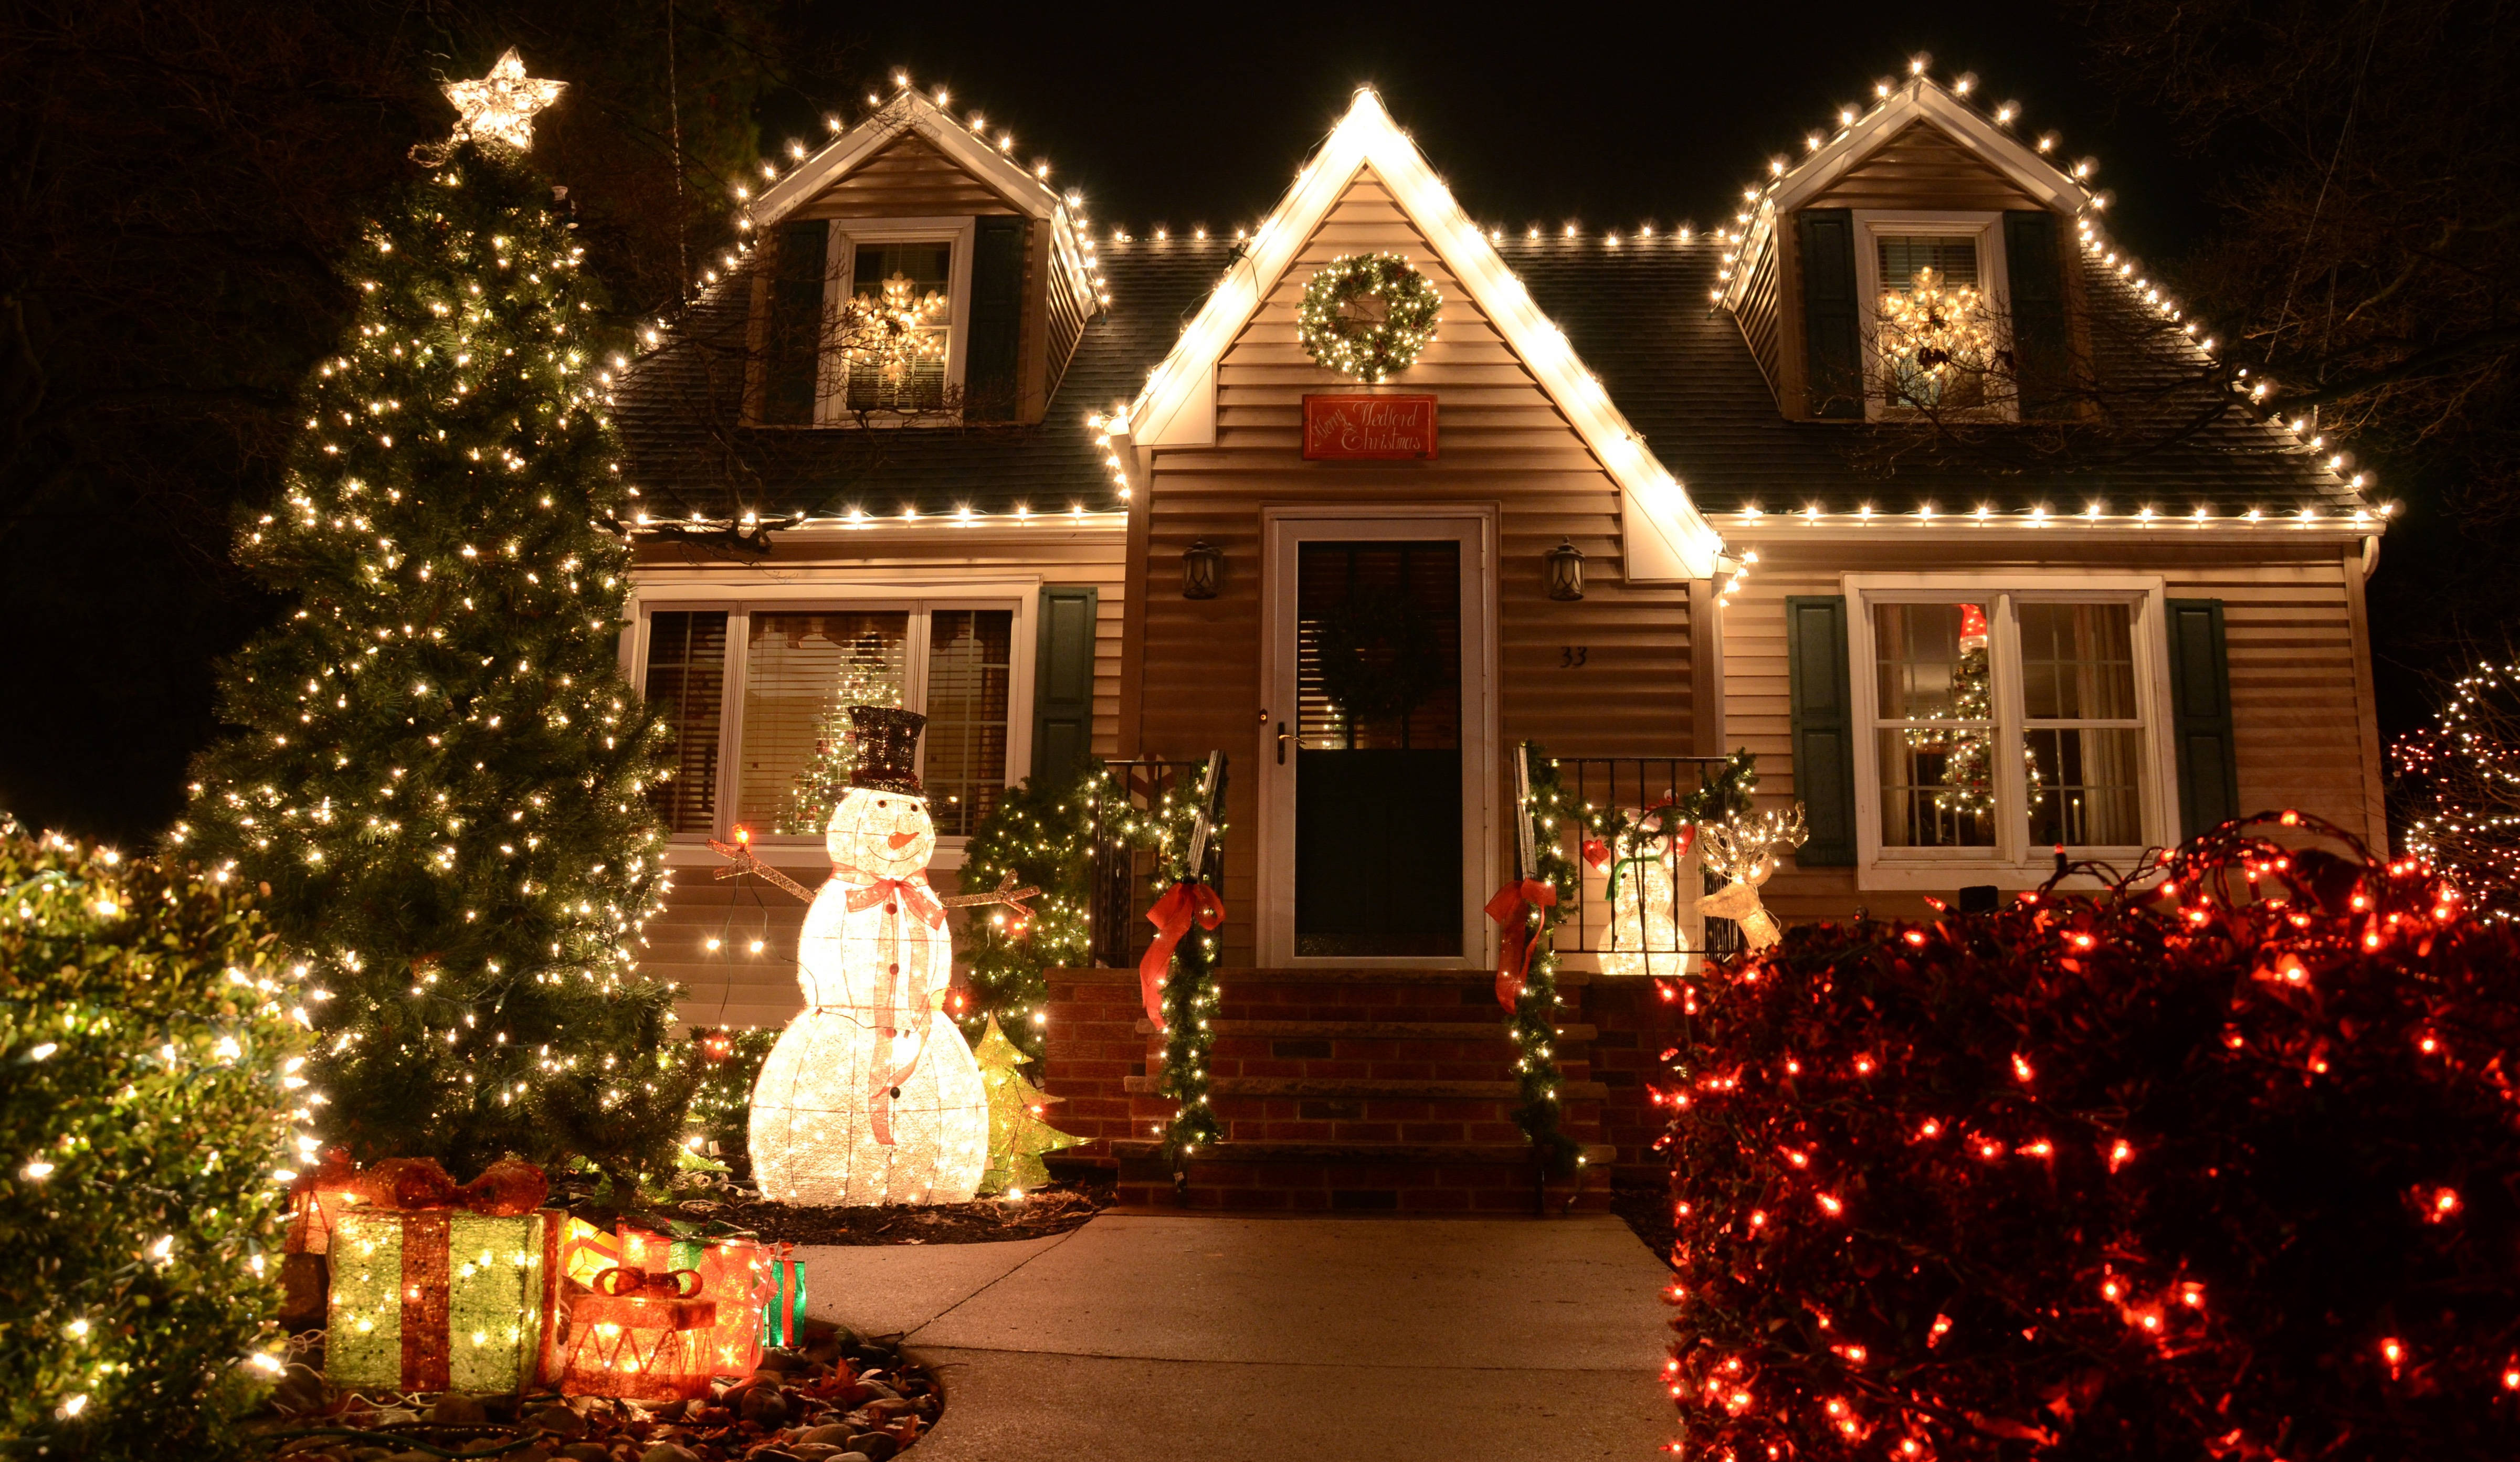 Outside Christmas Lights.Christmas Lights Installation Service In Chicagoland And Suburbs